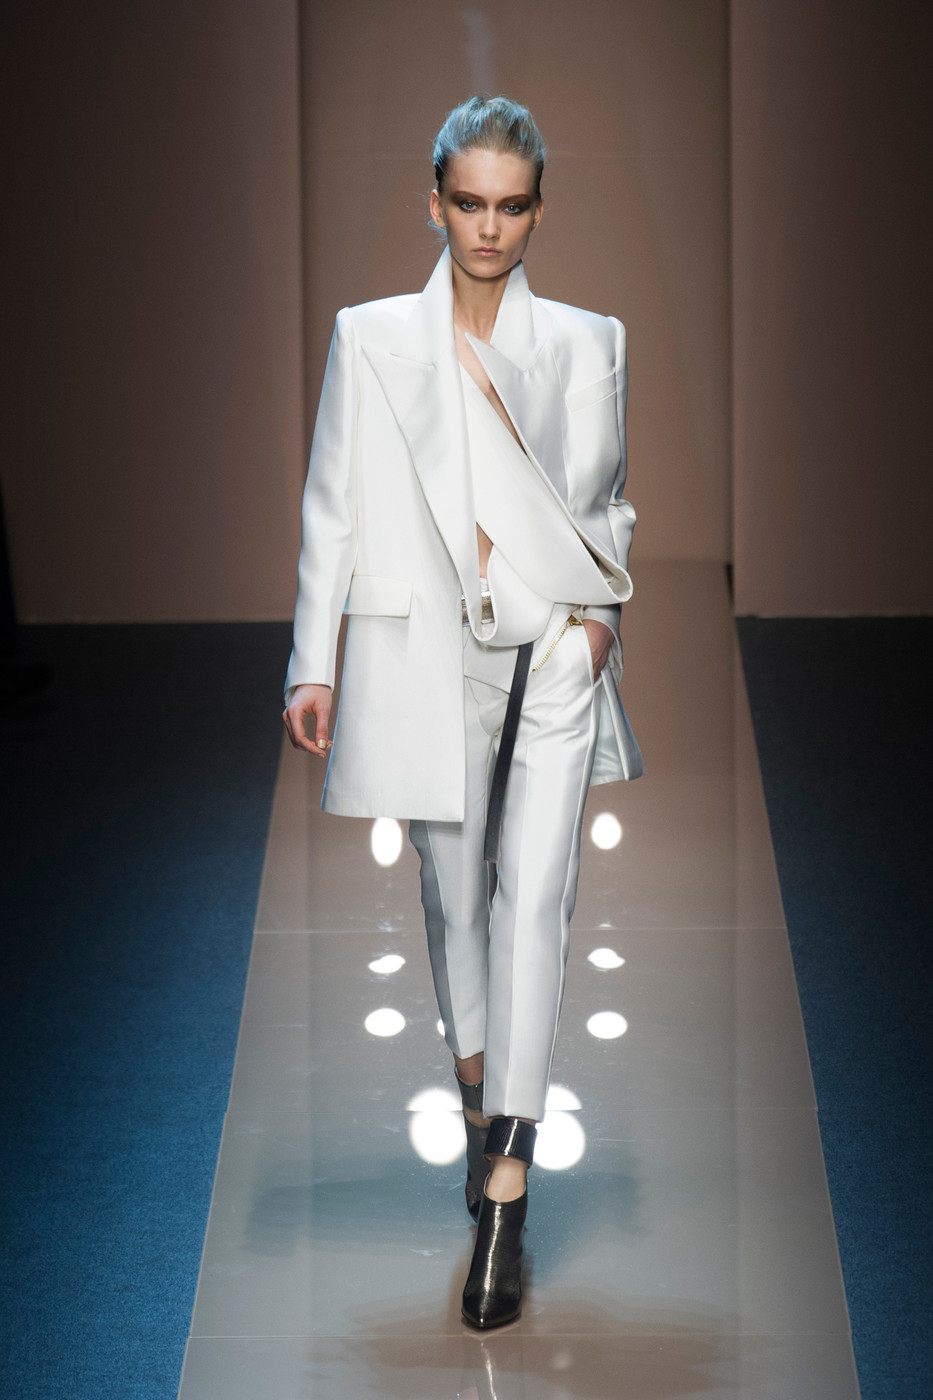 Gianfranco Ferré Fall 2013 Runway Pictures